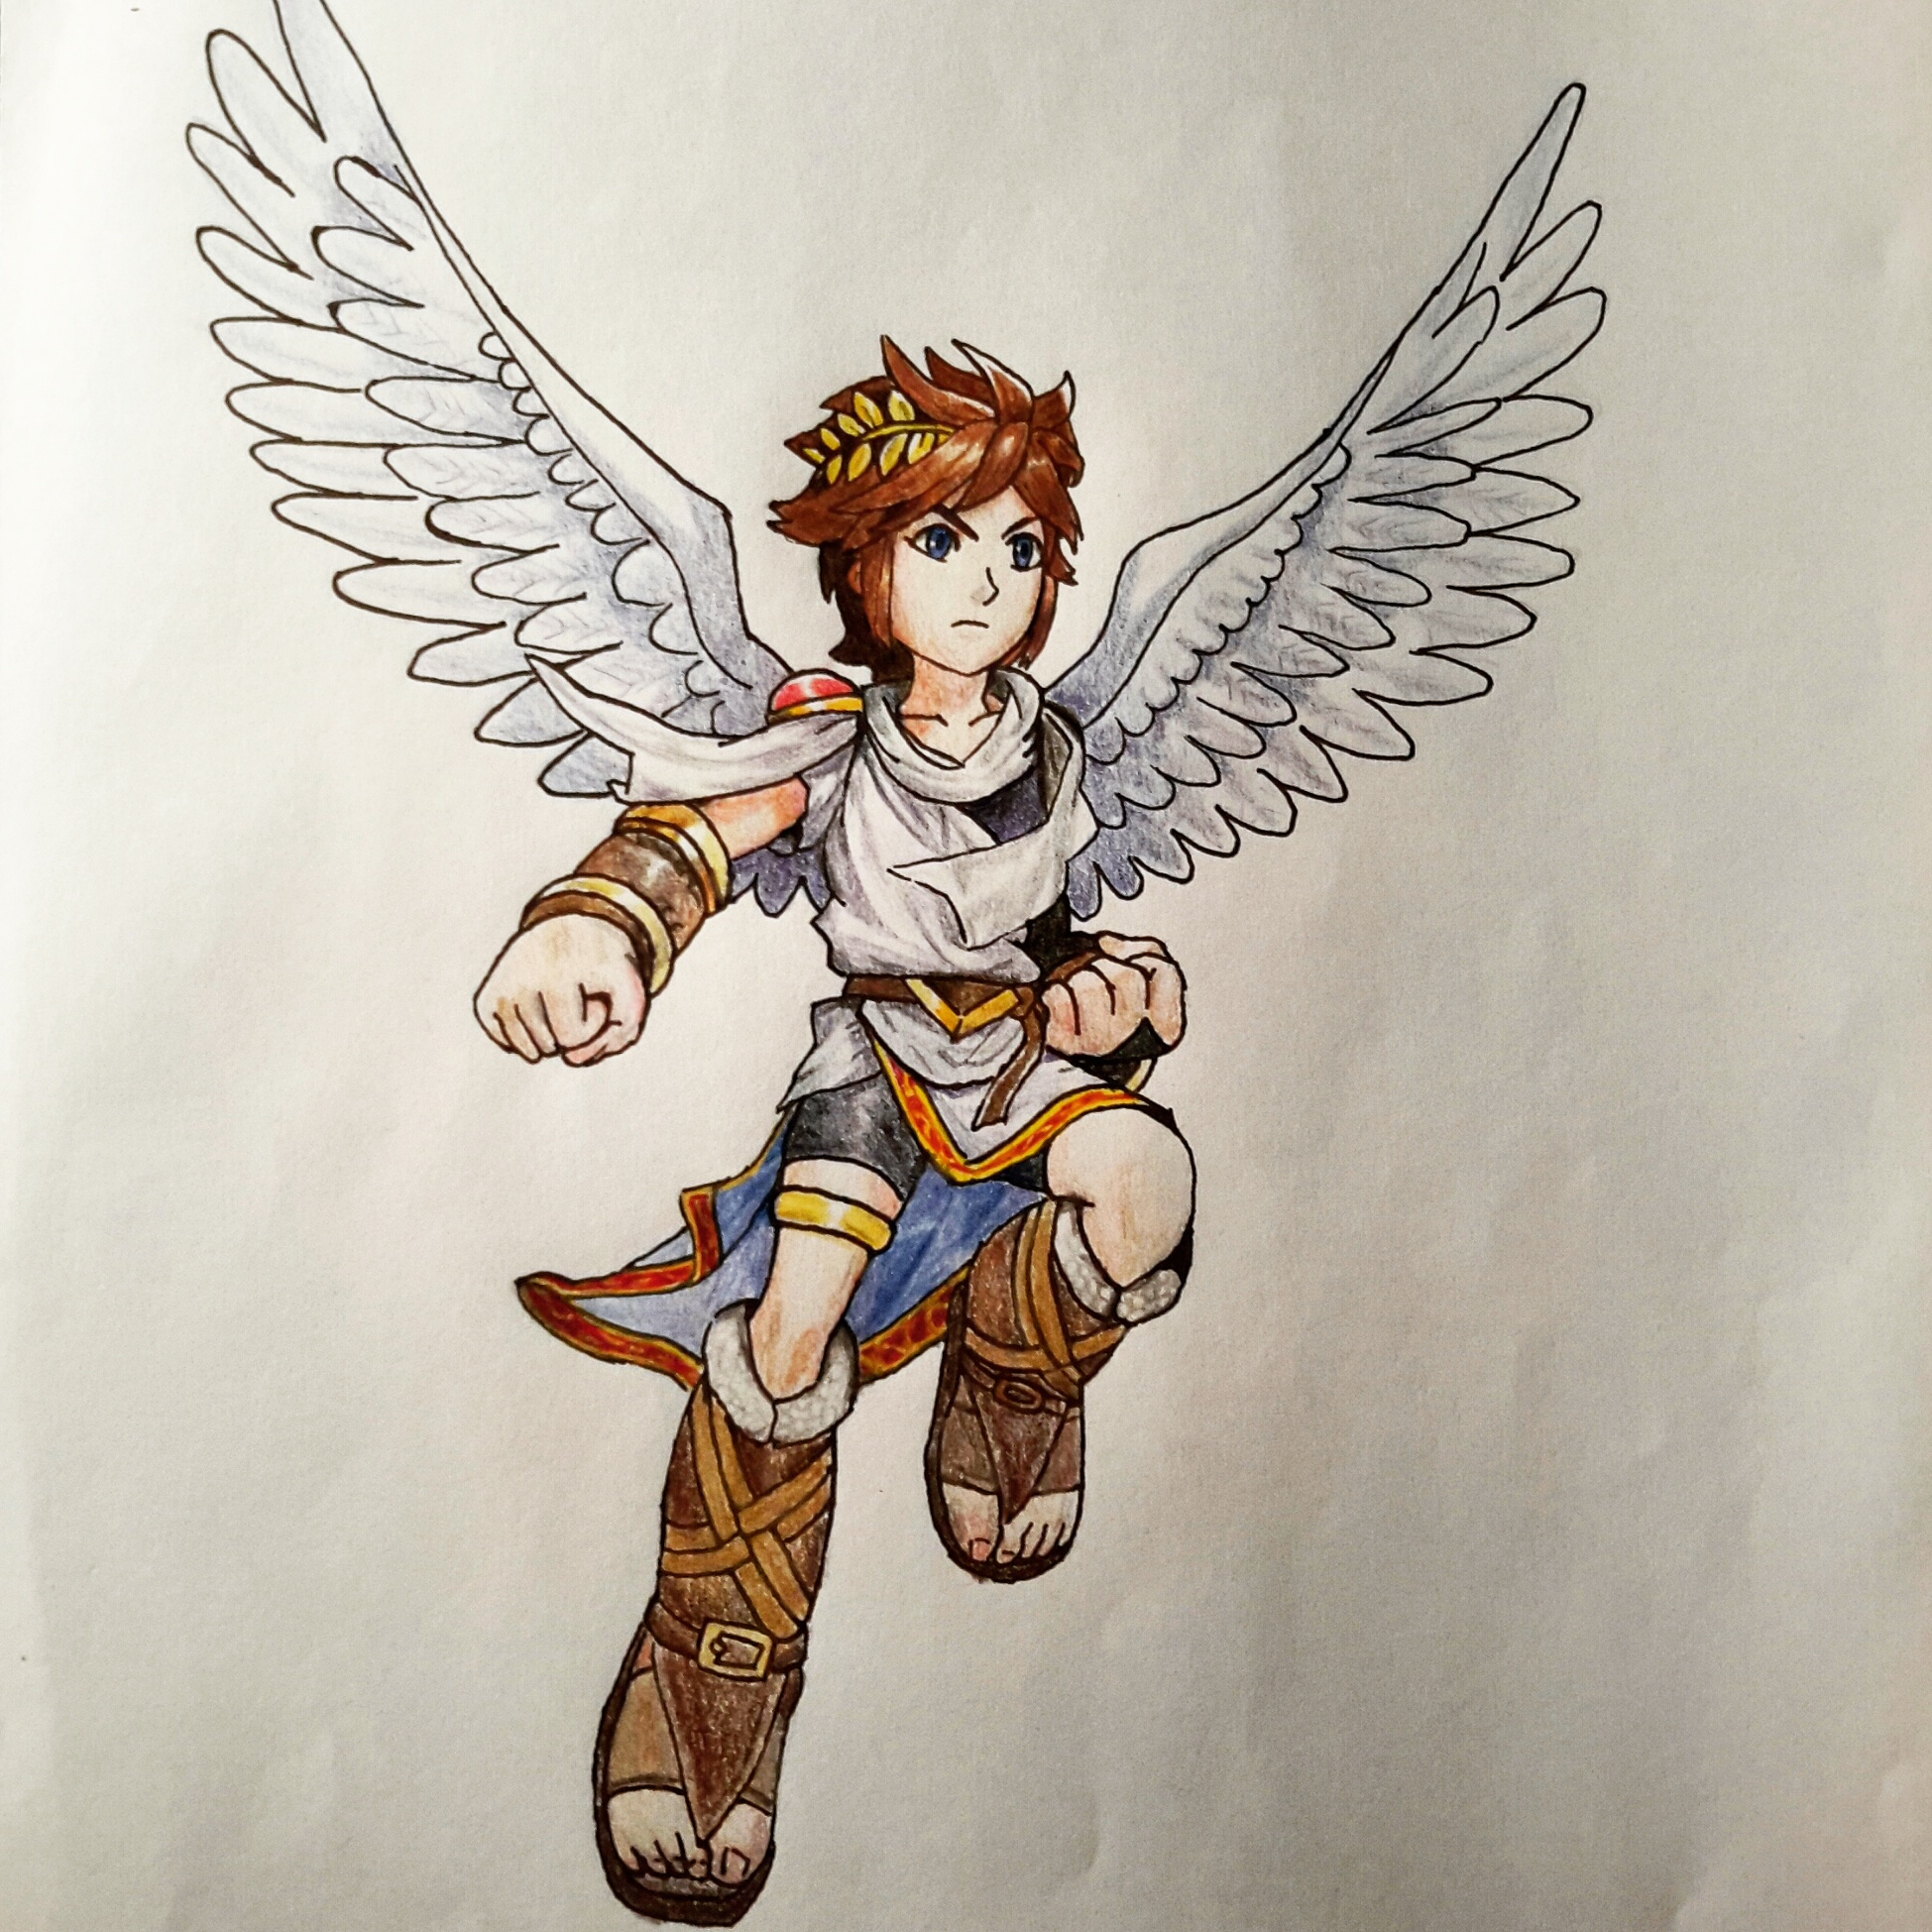 1500x1194 How To Draw 1949x1949 Pit Kid Icarus By Mingming8 On DeviantArt